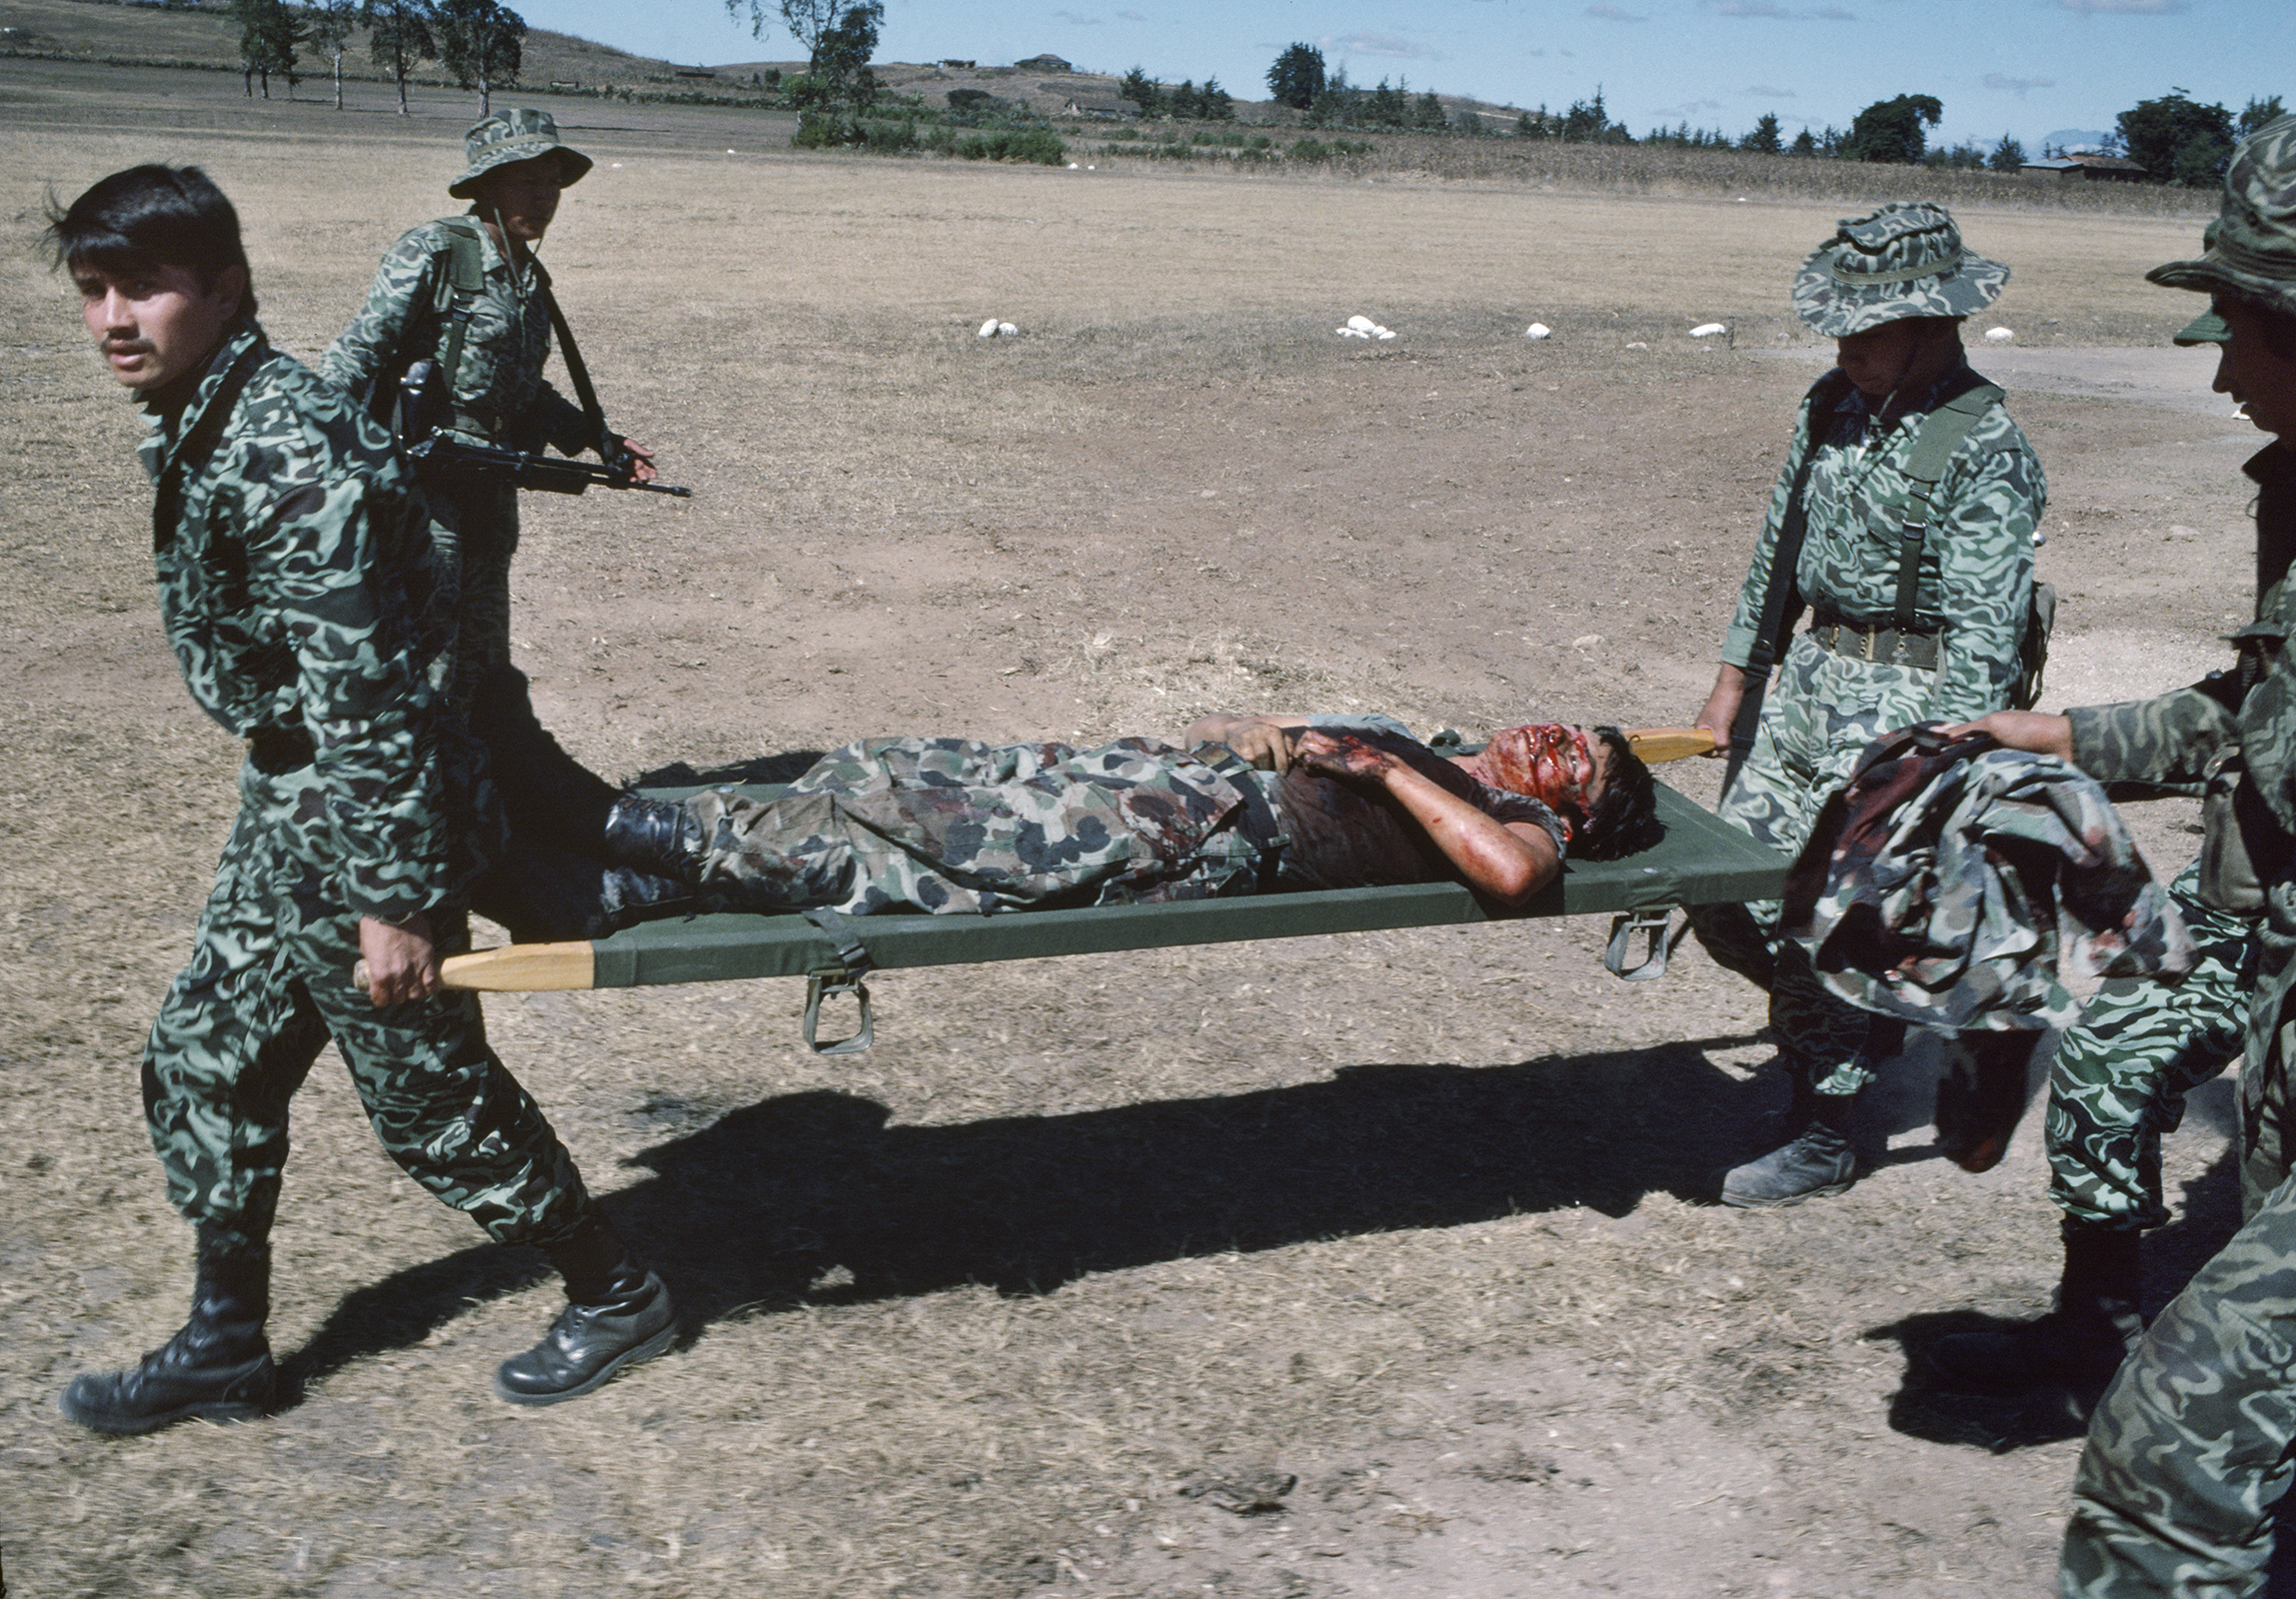 Guatemalan army soldiers carry a dead soldier brought to the army hospital in Santa Cruz del Quiché, Guatemala, January 20, 1982. On January 19, 1982, the Guerrilla Army of the Poor, EGP, attacked the army garrison in San Juan Cotzal, 60 miles north, with a reported 300 insurgents killing 37 government soldiers.